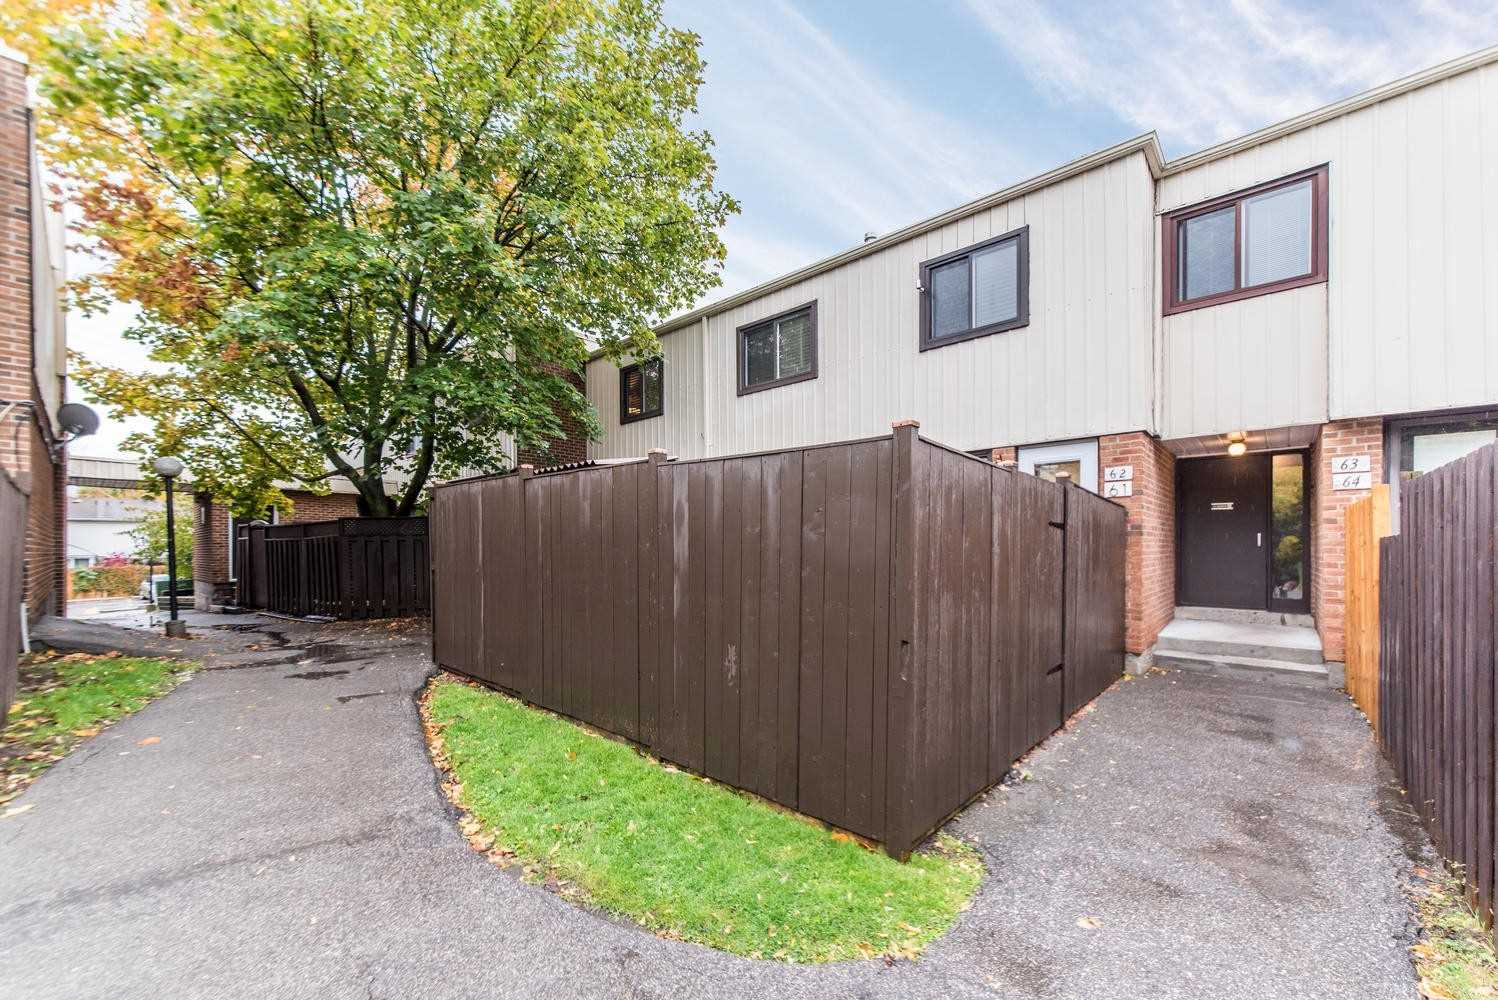 For Rent: 61 - 1100 Oxford Street, Oshawa, ON | 4 Bed, 1 Bath Townhouse for $2500.00.